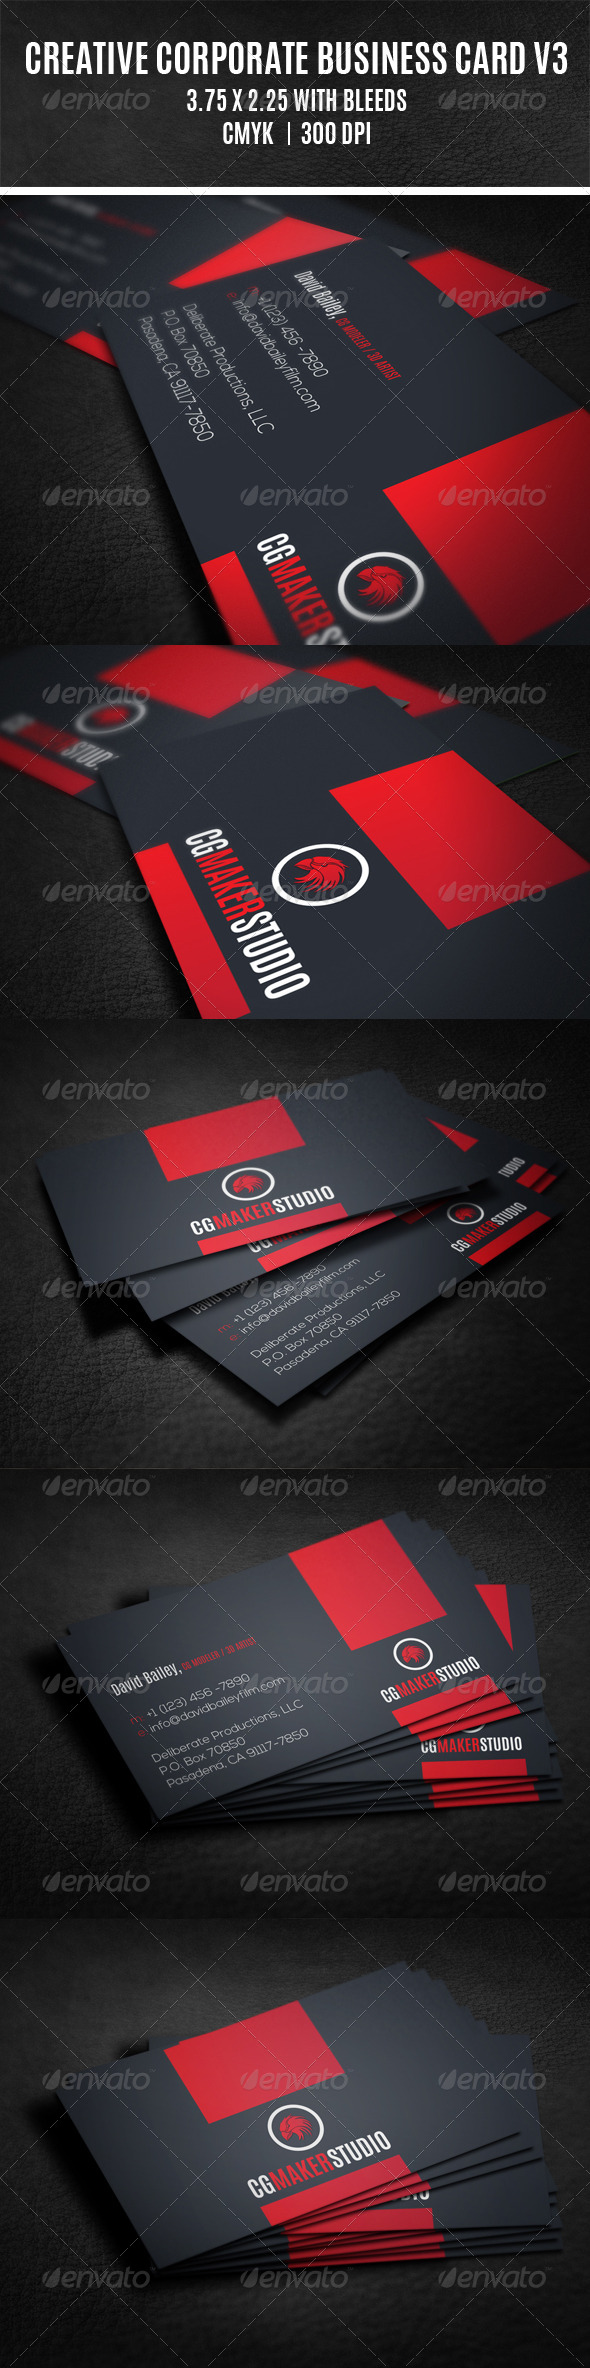 GraphicRiver Creative Corporate Business Card V3 8098098